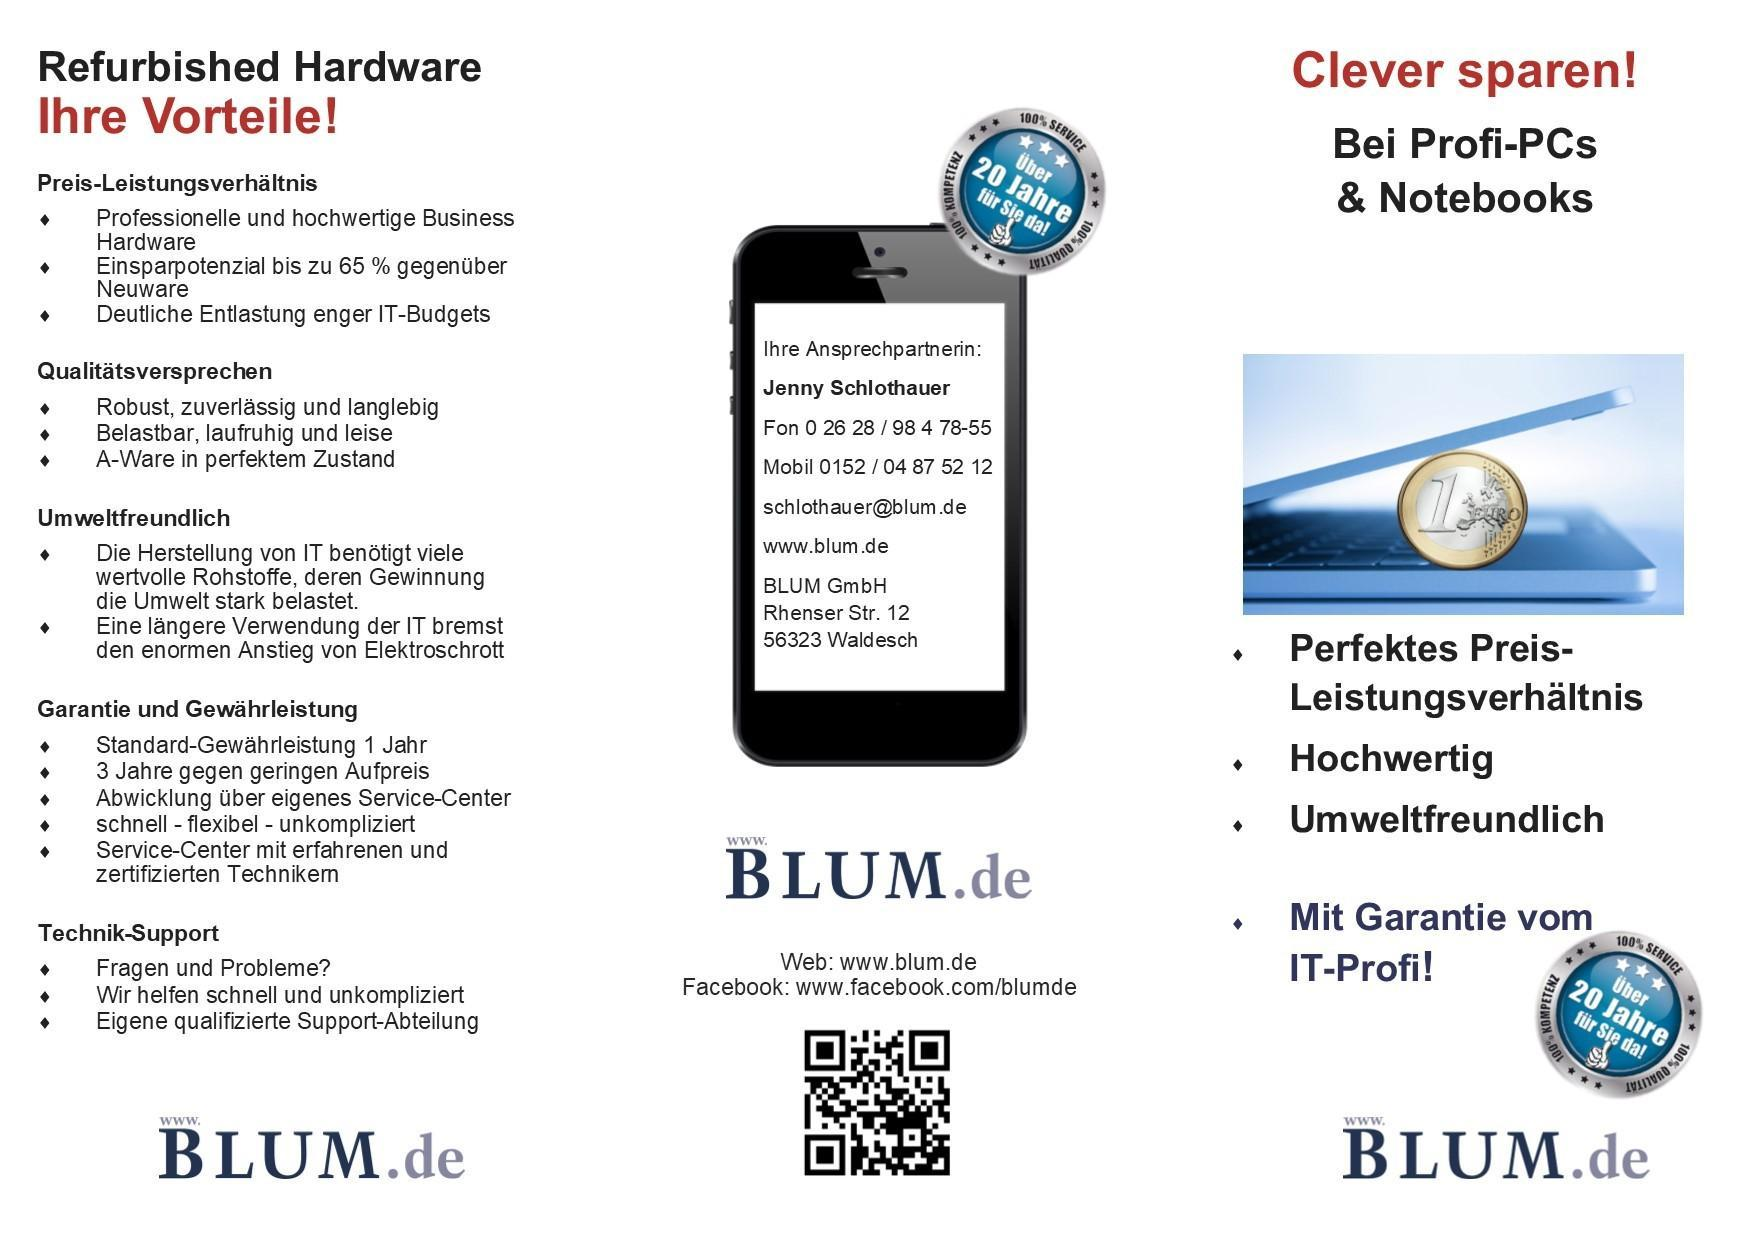 Flyer Hardware netto 02 2019 - Vorderseite